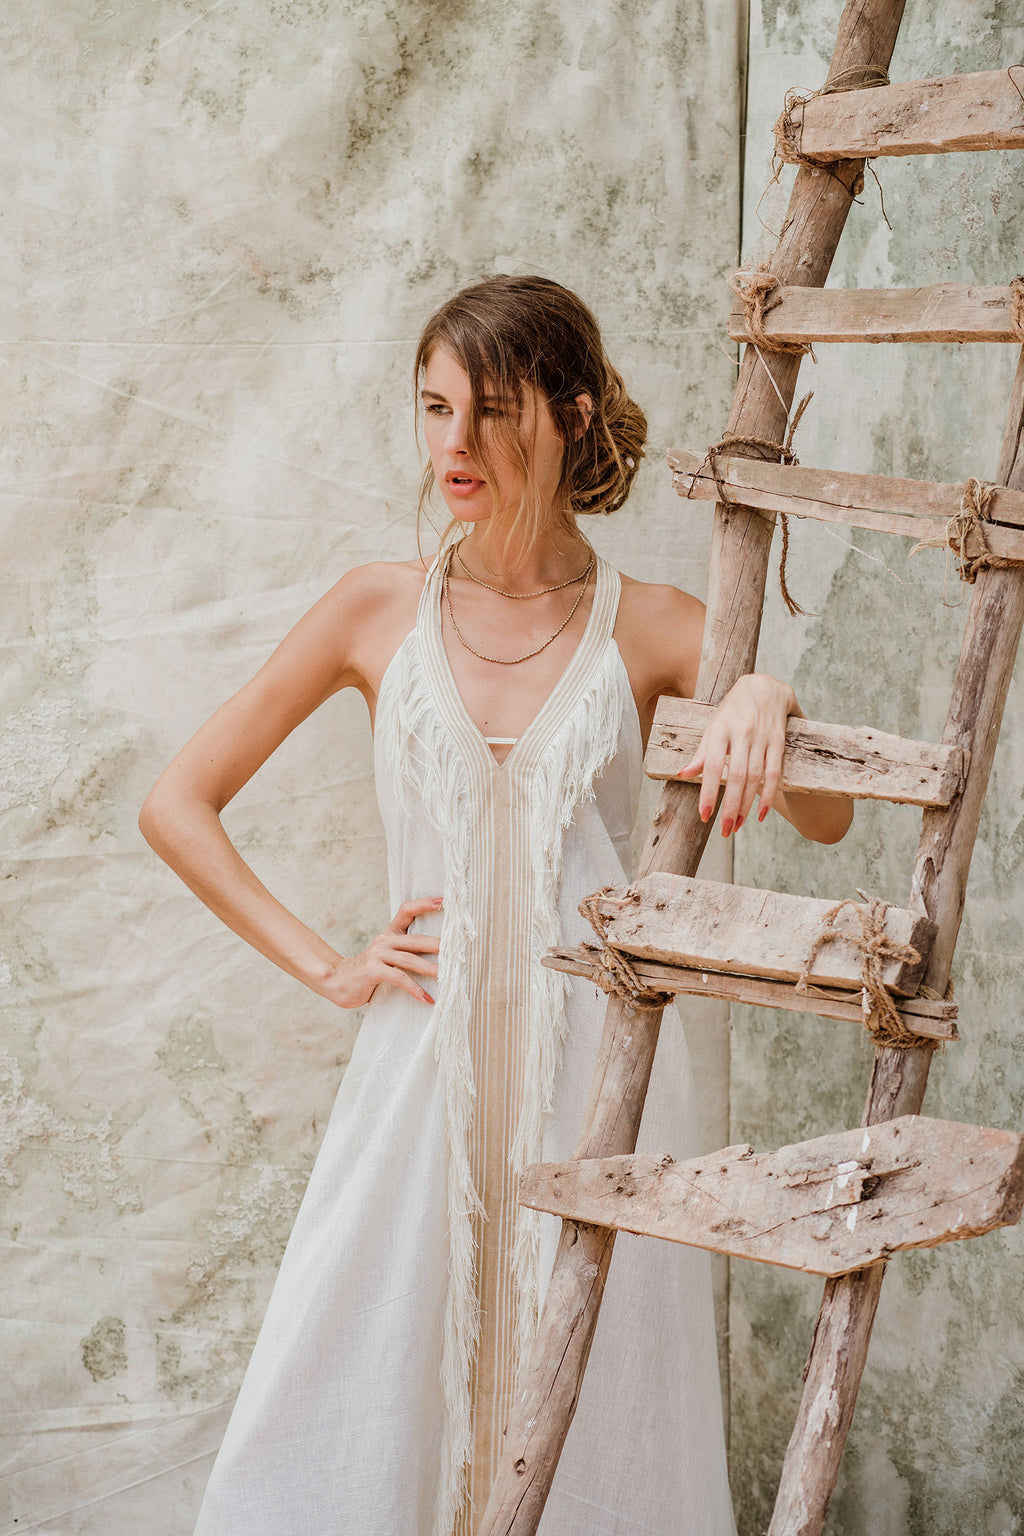 Beduin Boho White Dress In Raw Silk With Tassels